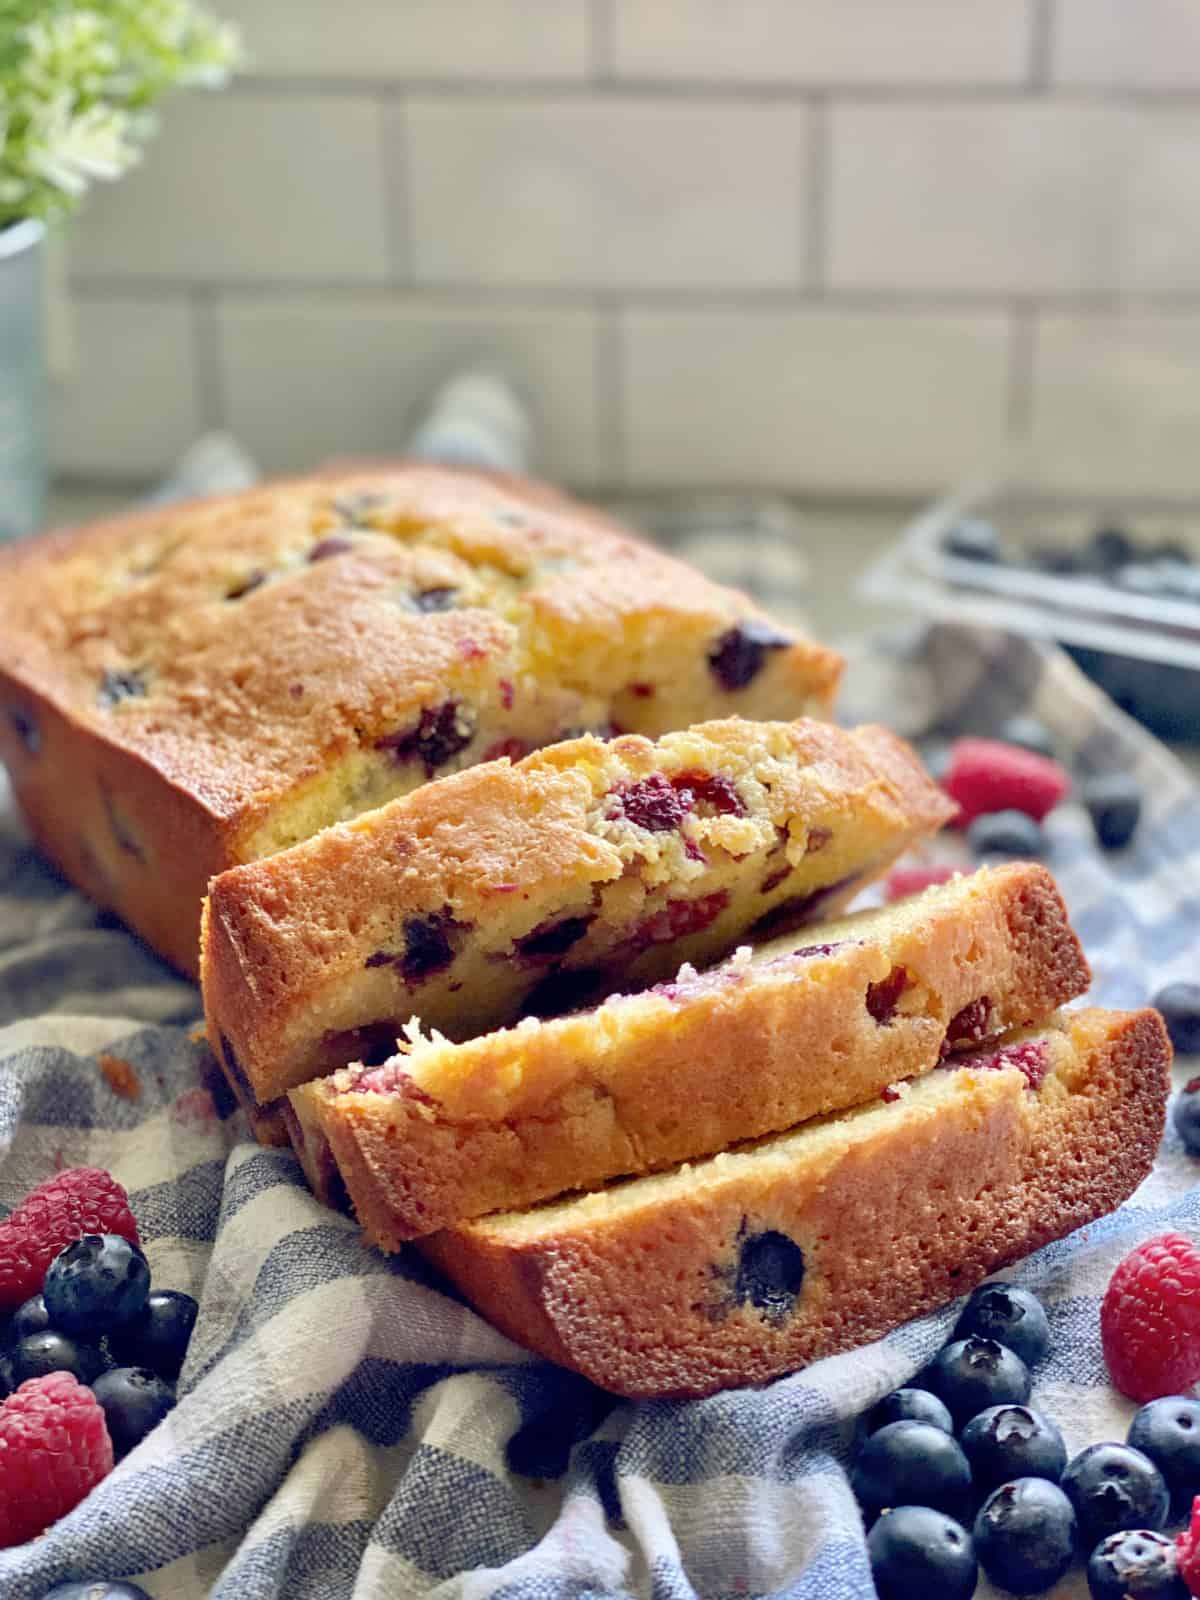 Berry Cornmeal Pound Cake with 3 slices on a white and blue checkered cloth.